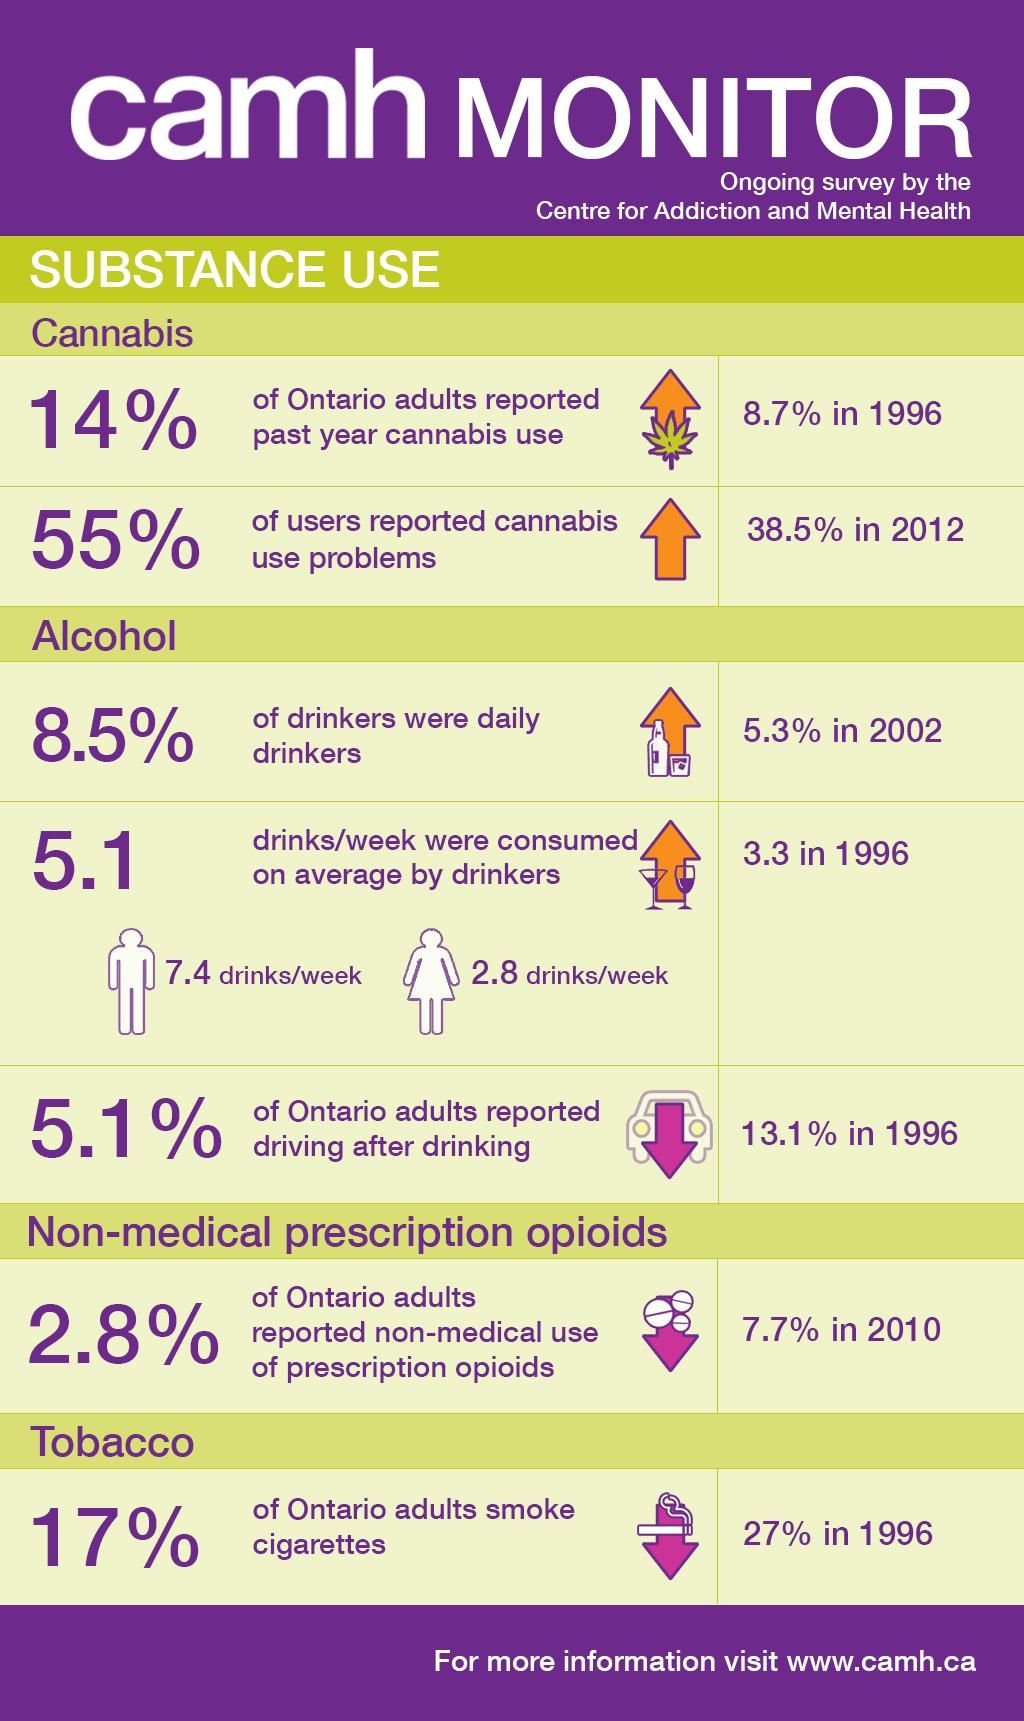 2013 CAMH Monitor survey of substance use in Ontario